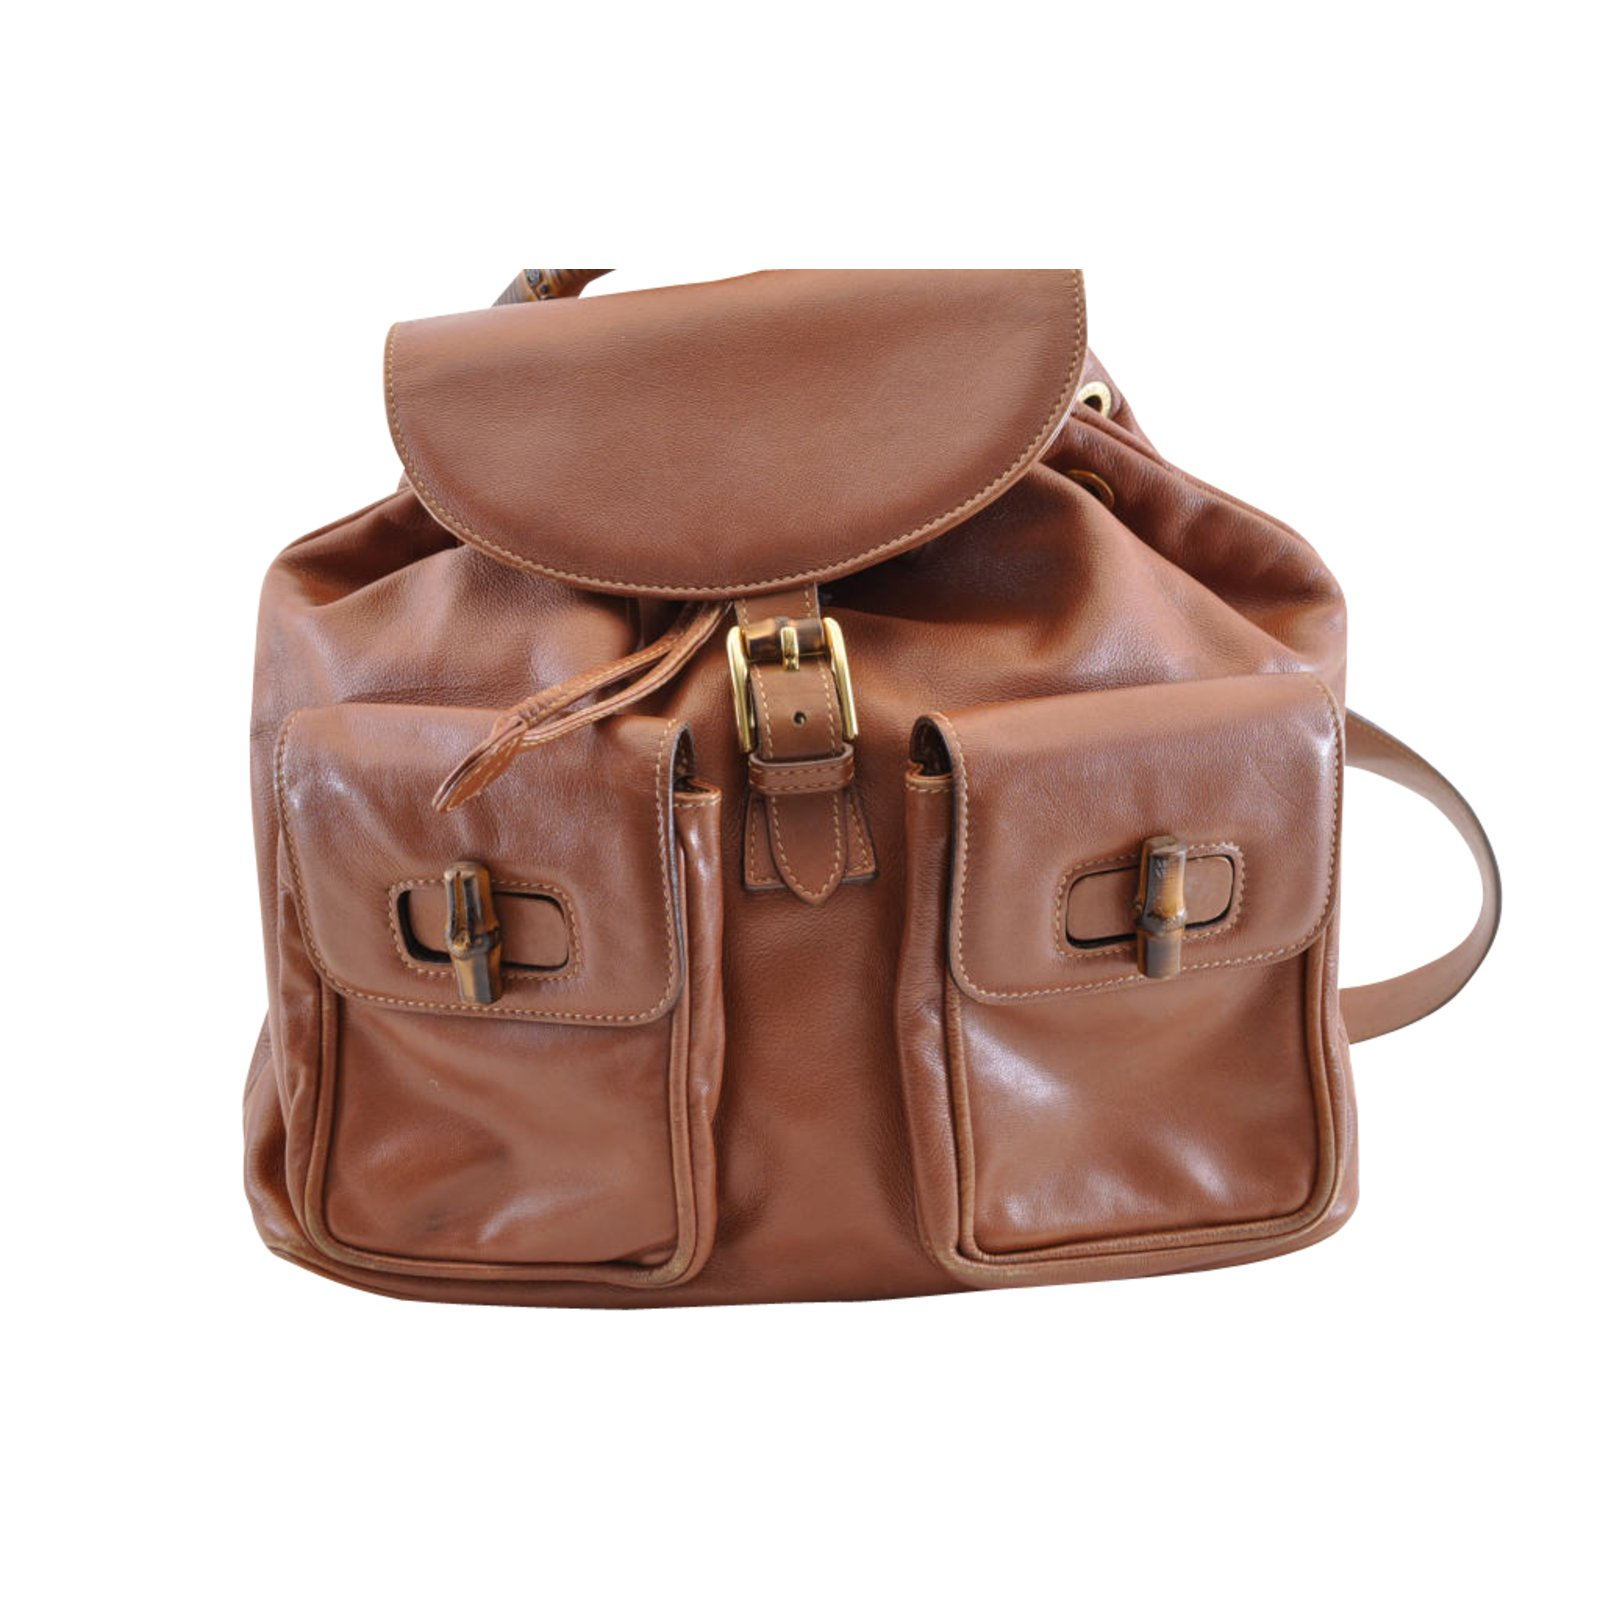 694891aee07d78 Gucci Gucci Bamboo Backpack Handbags Leather Brown ref.105009 - Joli ...